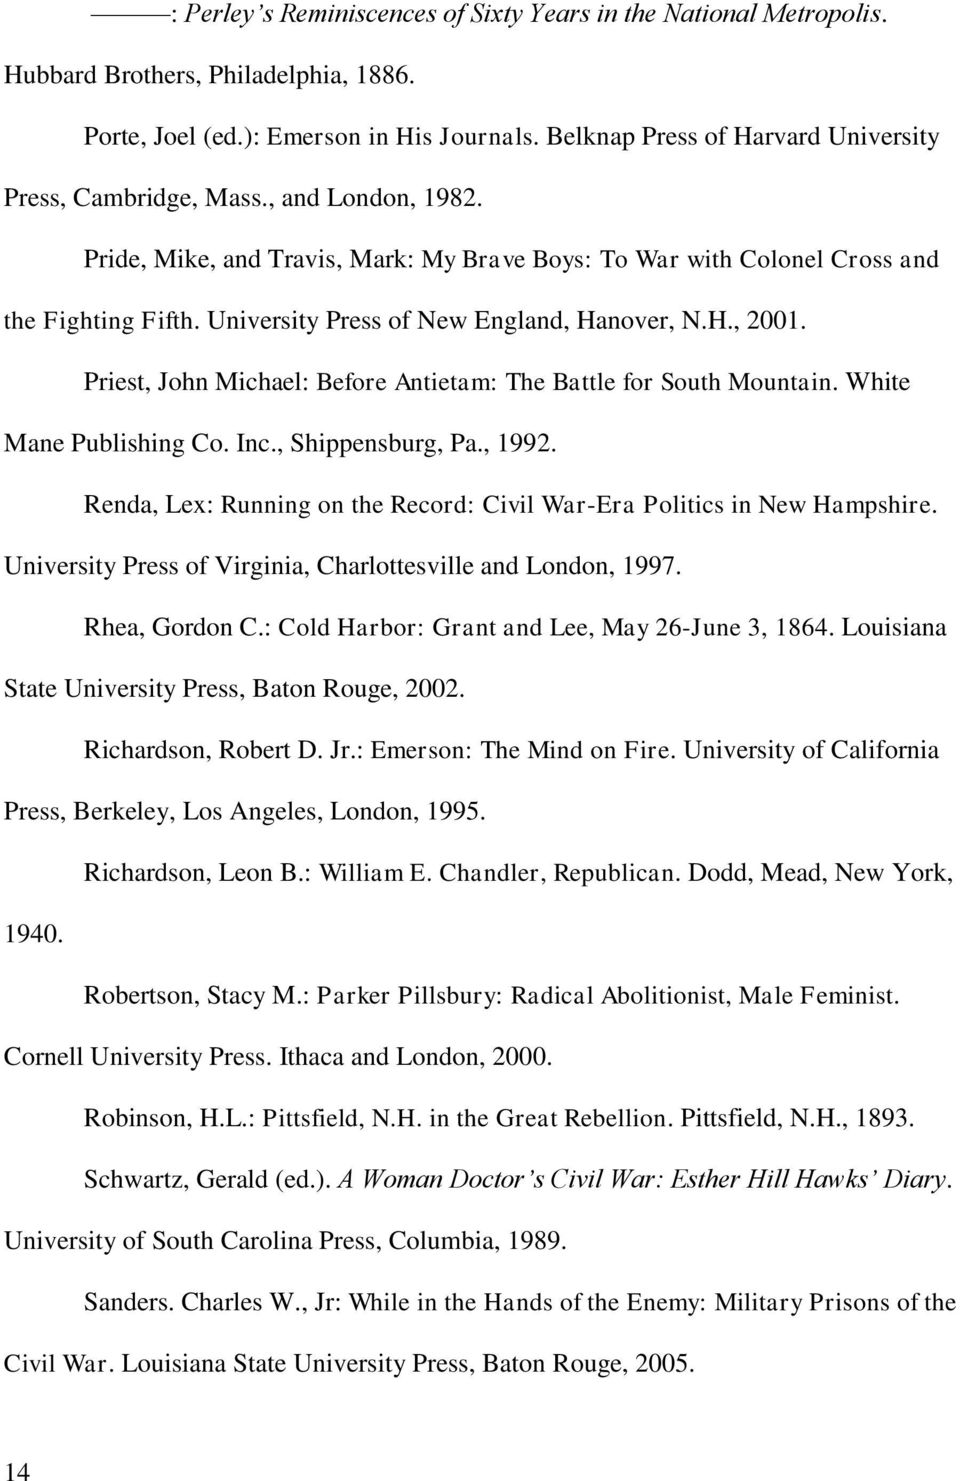 University Press of New England, Hanover, N.H., 2001. Priest, John Michael: Before Antietam: The Battle for South Mountain. White Mane Publishing Co. Inc., Shippensburg, Pa., 1992.